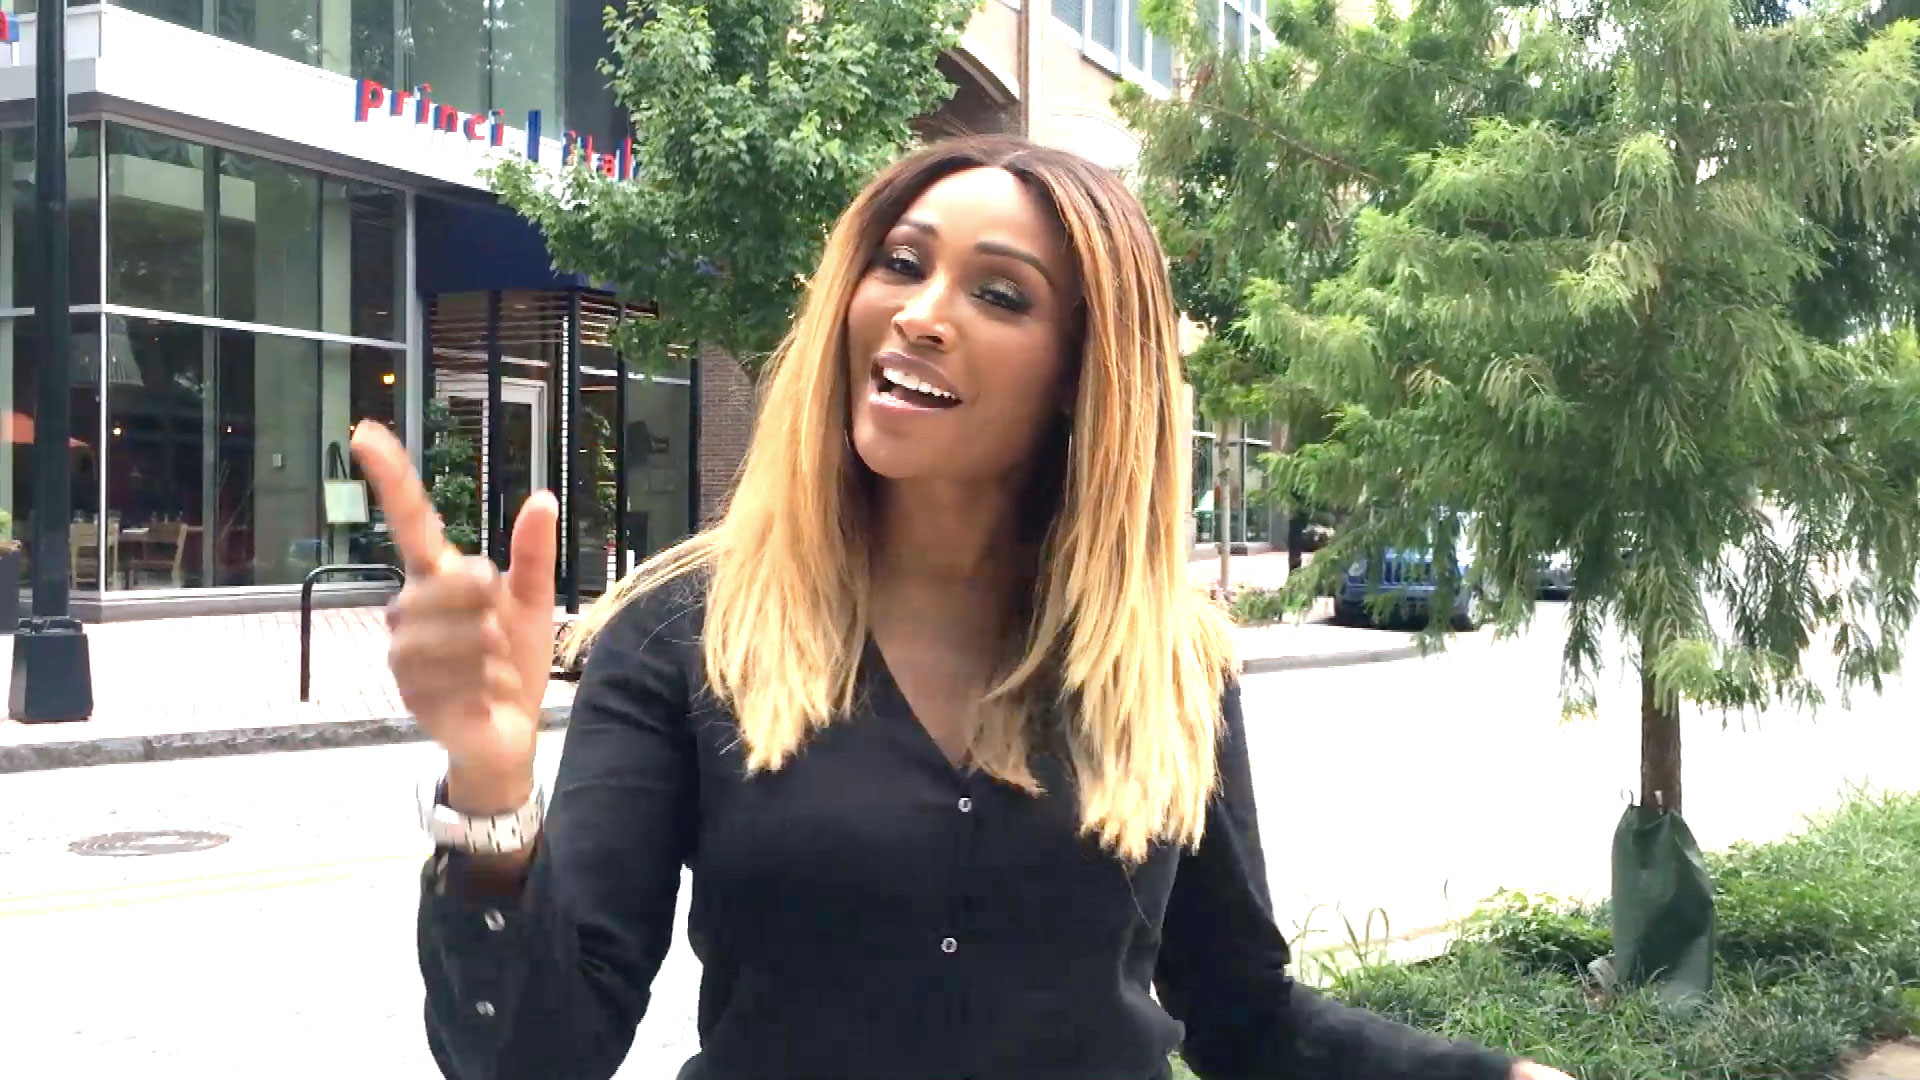 Cynthia Bailey Tells Her Fans That Tomorrow Is Not Promised